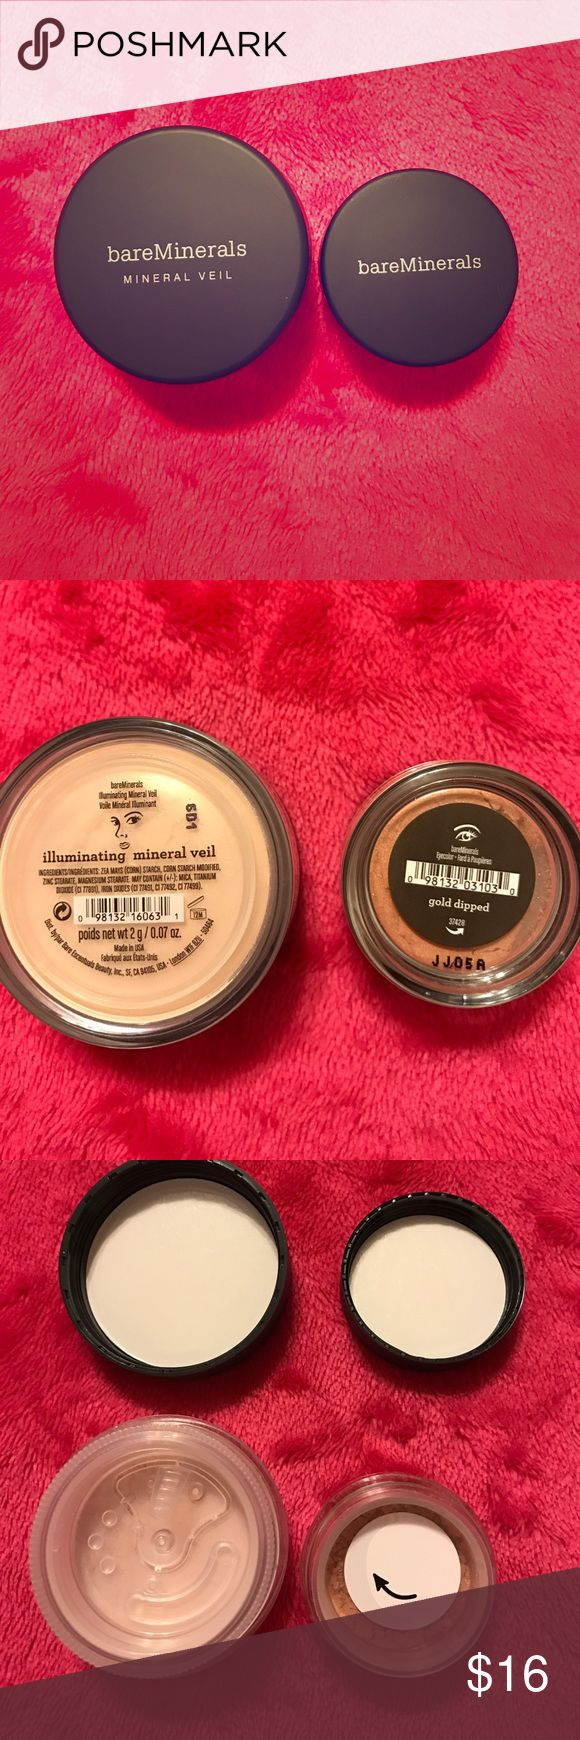 """BareMinerals Duo BareMinerals Duo. Illuminating Mineral Veil (.07 oz) and Eyeshadow in """"Gold Dipped"""" (.02 oz). Both are brand new and sealed. See pictures for more details. Price firm unless bundled. bareMinerals Makeup"""